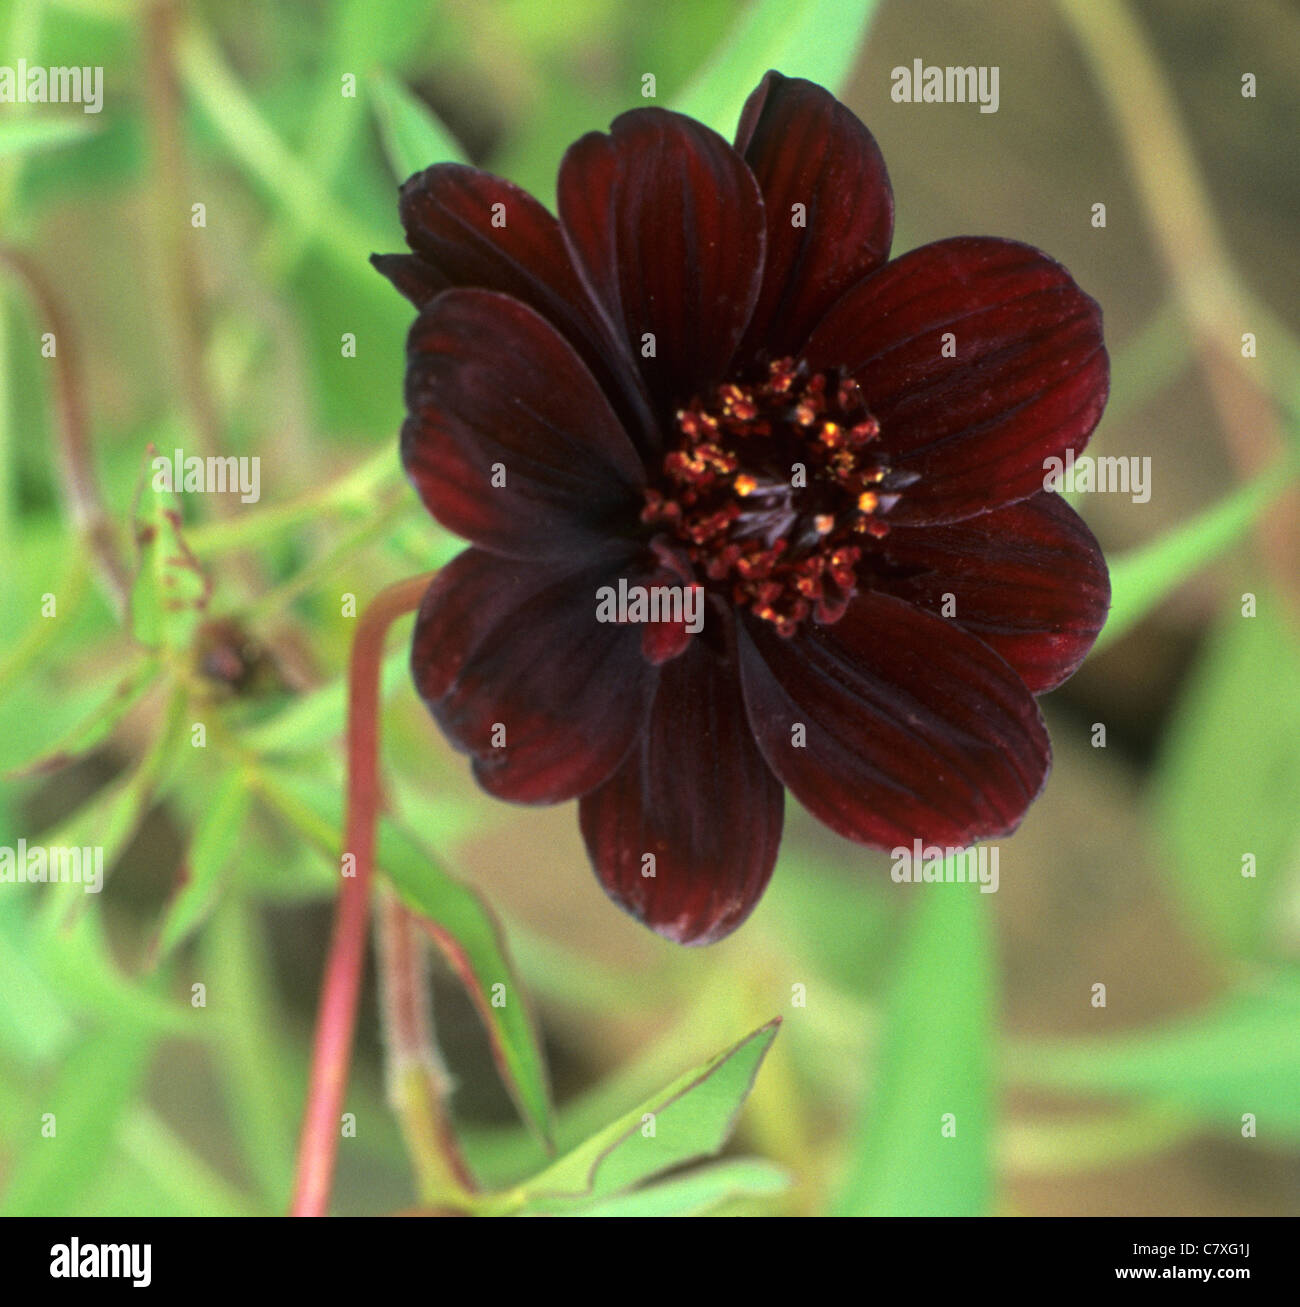 Cosmos Atrosanguineus Chocolate Stock Photos & Cosmos ...